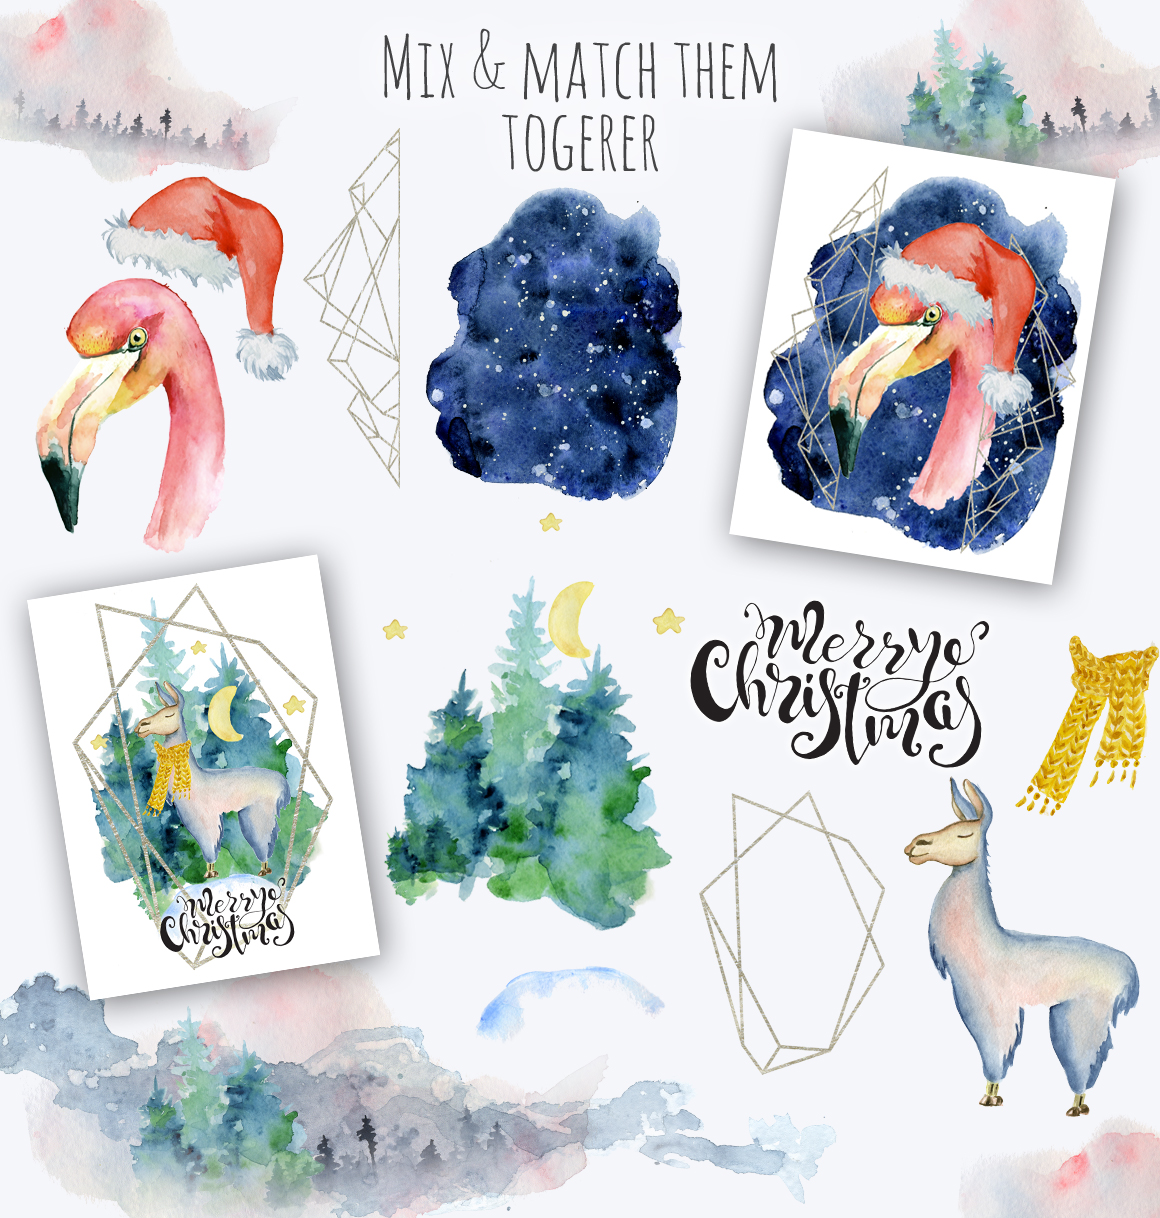 Winter Wonderland Clipart: 14 Christmas Watercolor Clipart Bundles in 1 - $28 - 18 mix and match